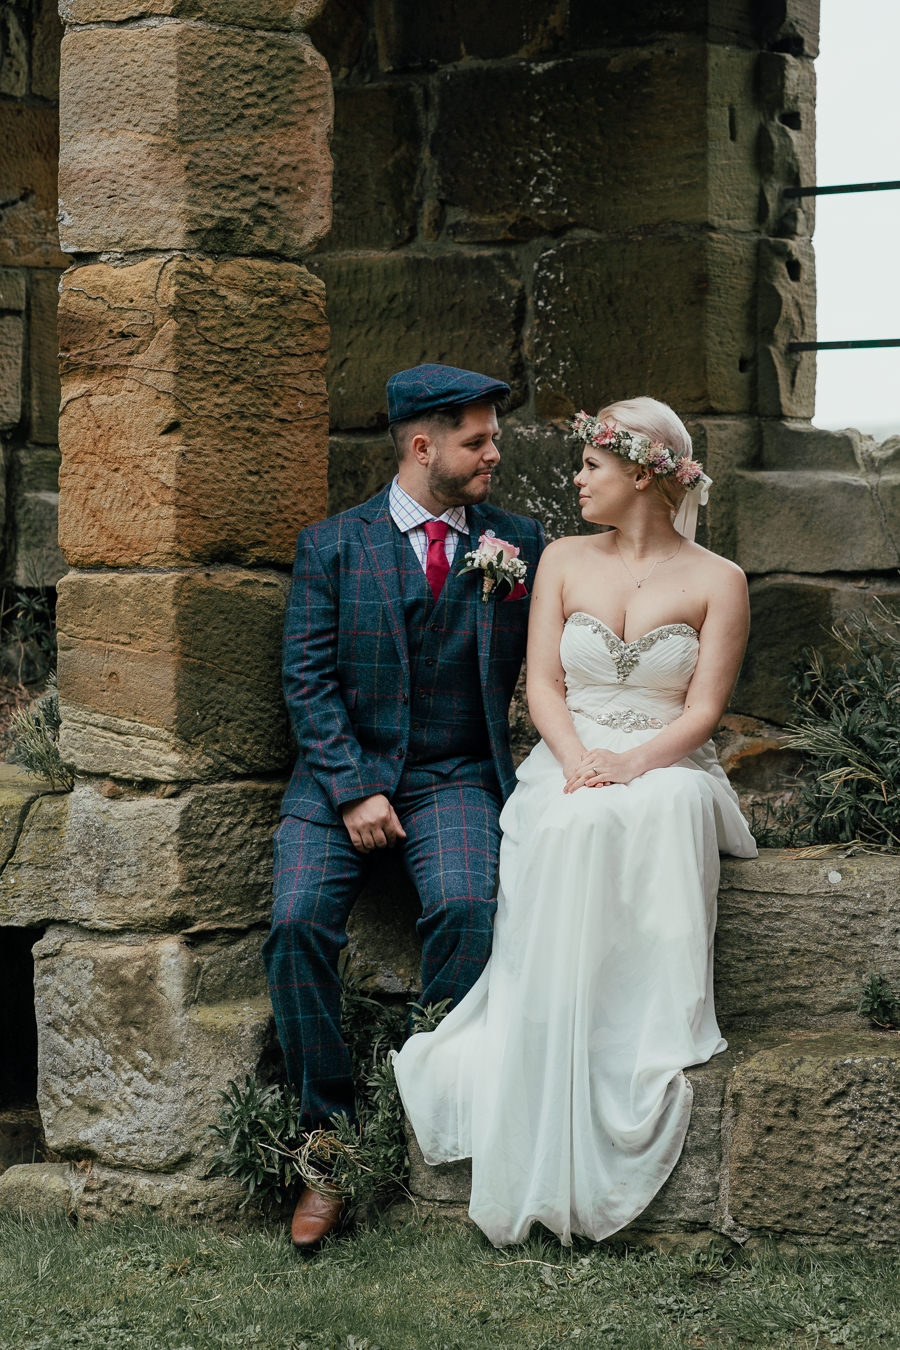 Rural English wedding style at Danby Castle, photo credit Rosanna Lilly Photography (32)